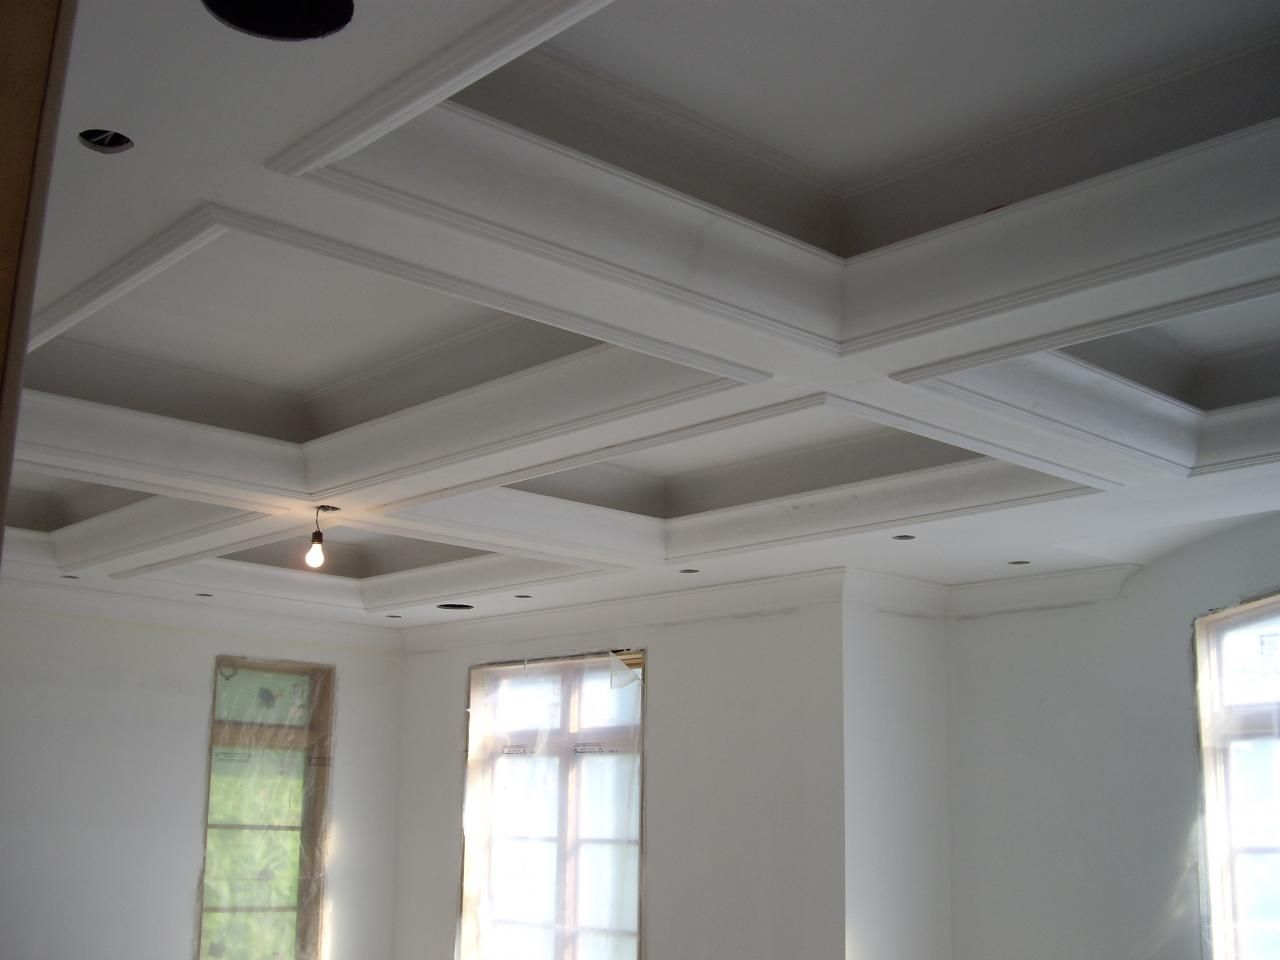 moulding on ceiling | Empire Plaster Moulding - Ceiling Designs - Moulding On Ceiling Empire Plaster Moulding - Ceiling Designs